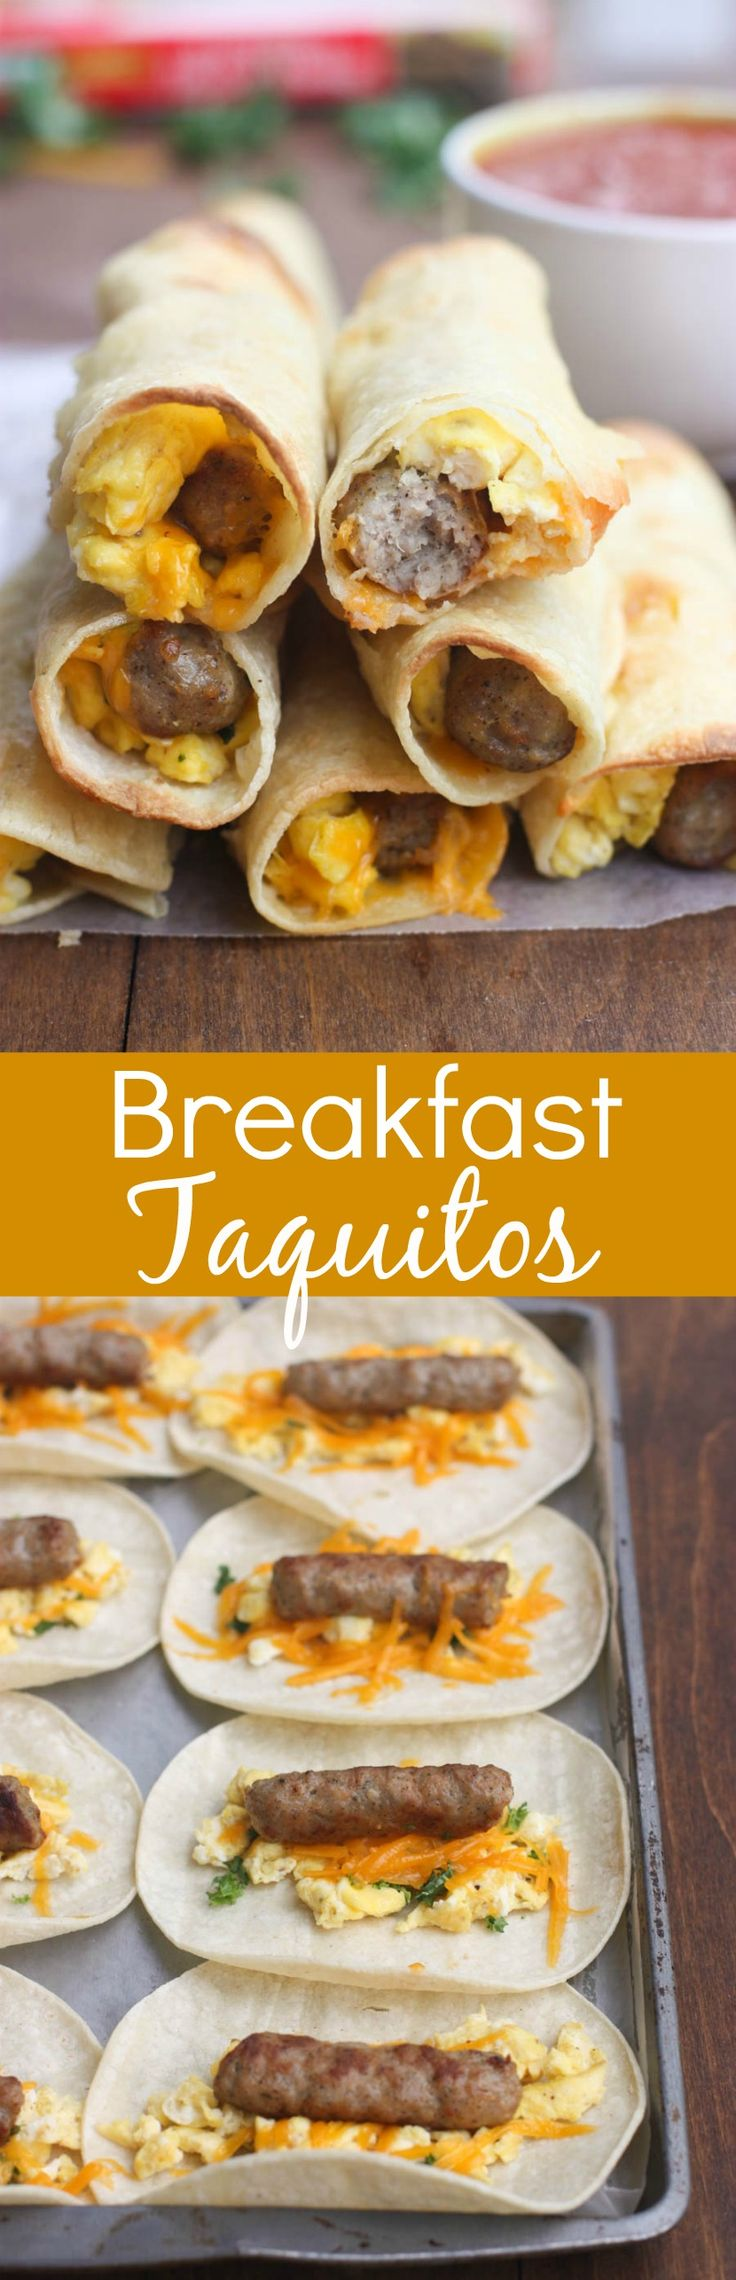 Scrambled eggs, cheese and sausage links rolled and baked inside a corn tortilla. These Egg and Sausage Breakfast Taquitos are simple and delicious!  Tastes Better From Scratch